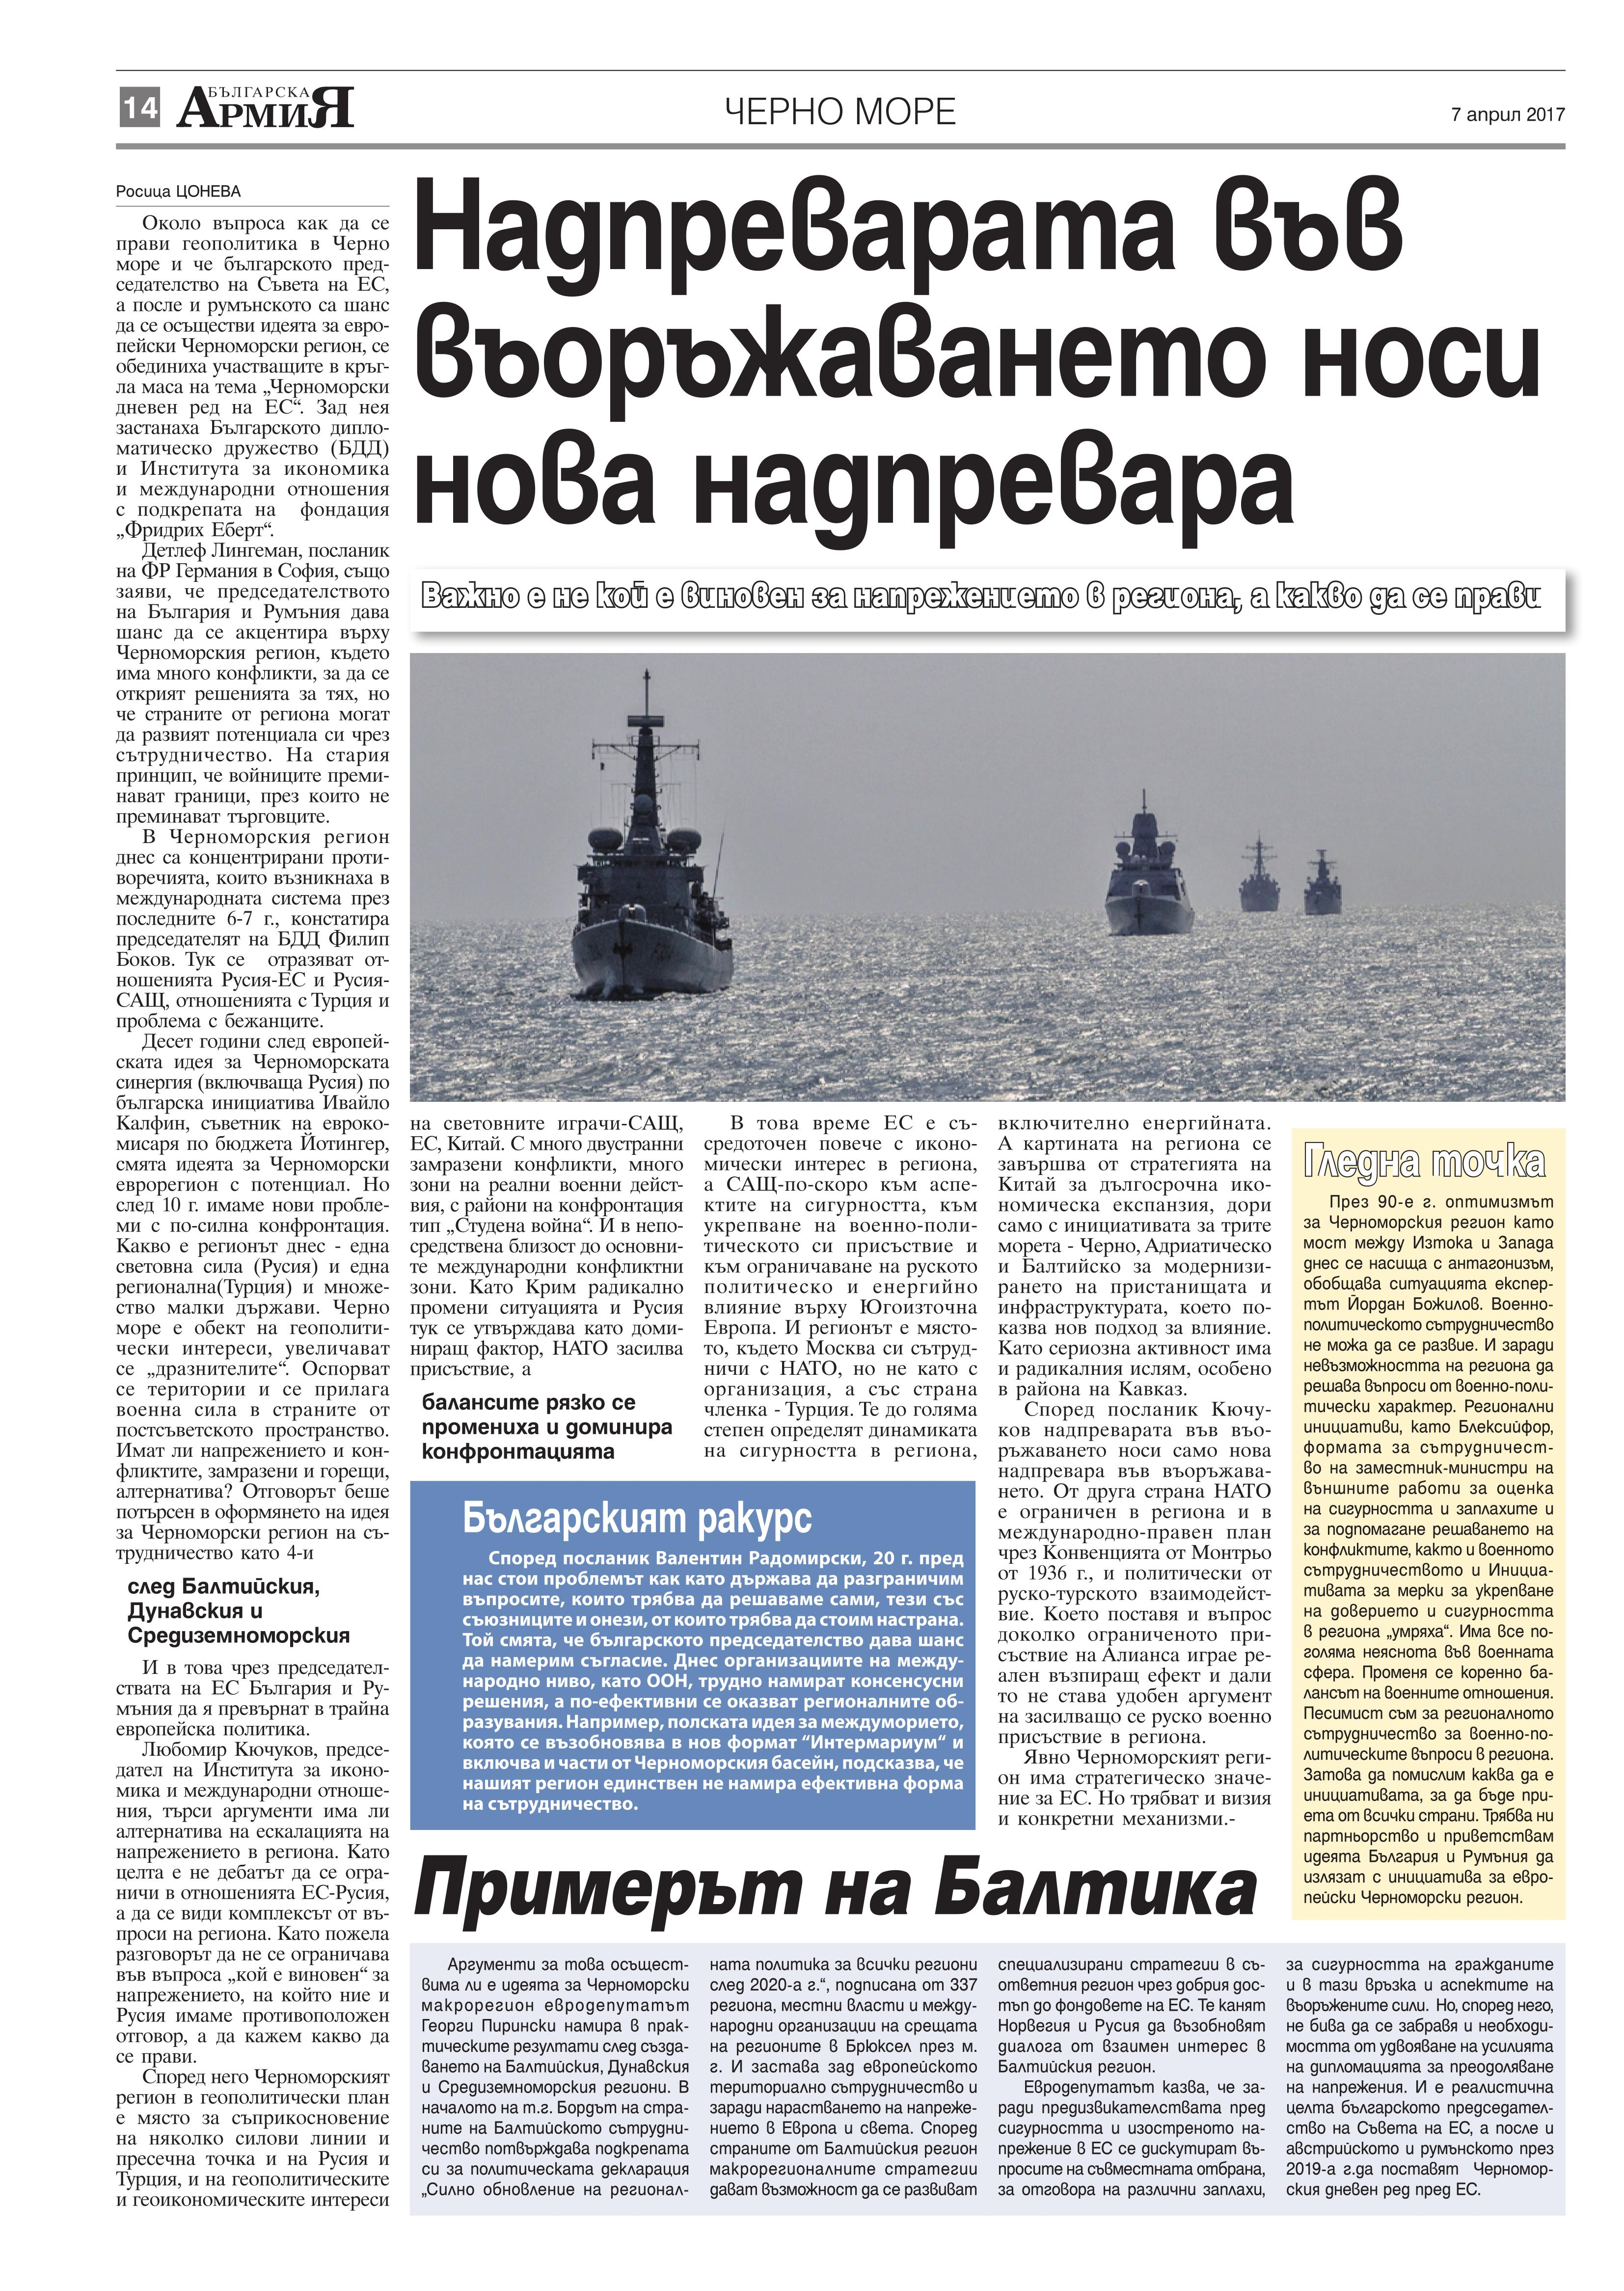 https://www.armymedia.bg/wp-content/uploads/2015/06/14.page1_-18.jpg